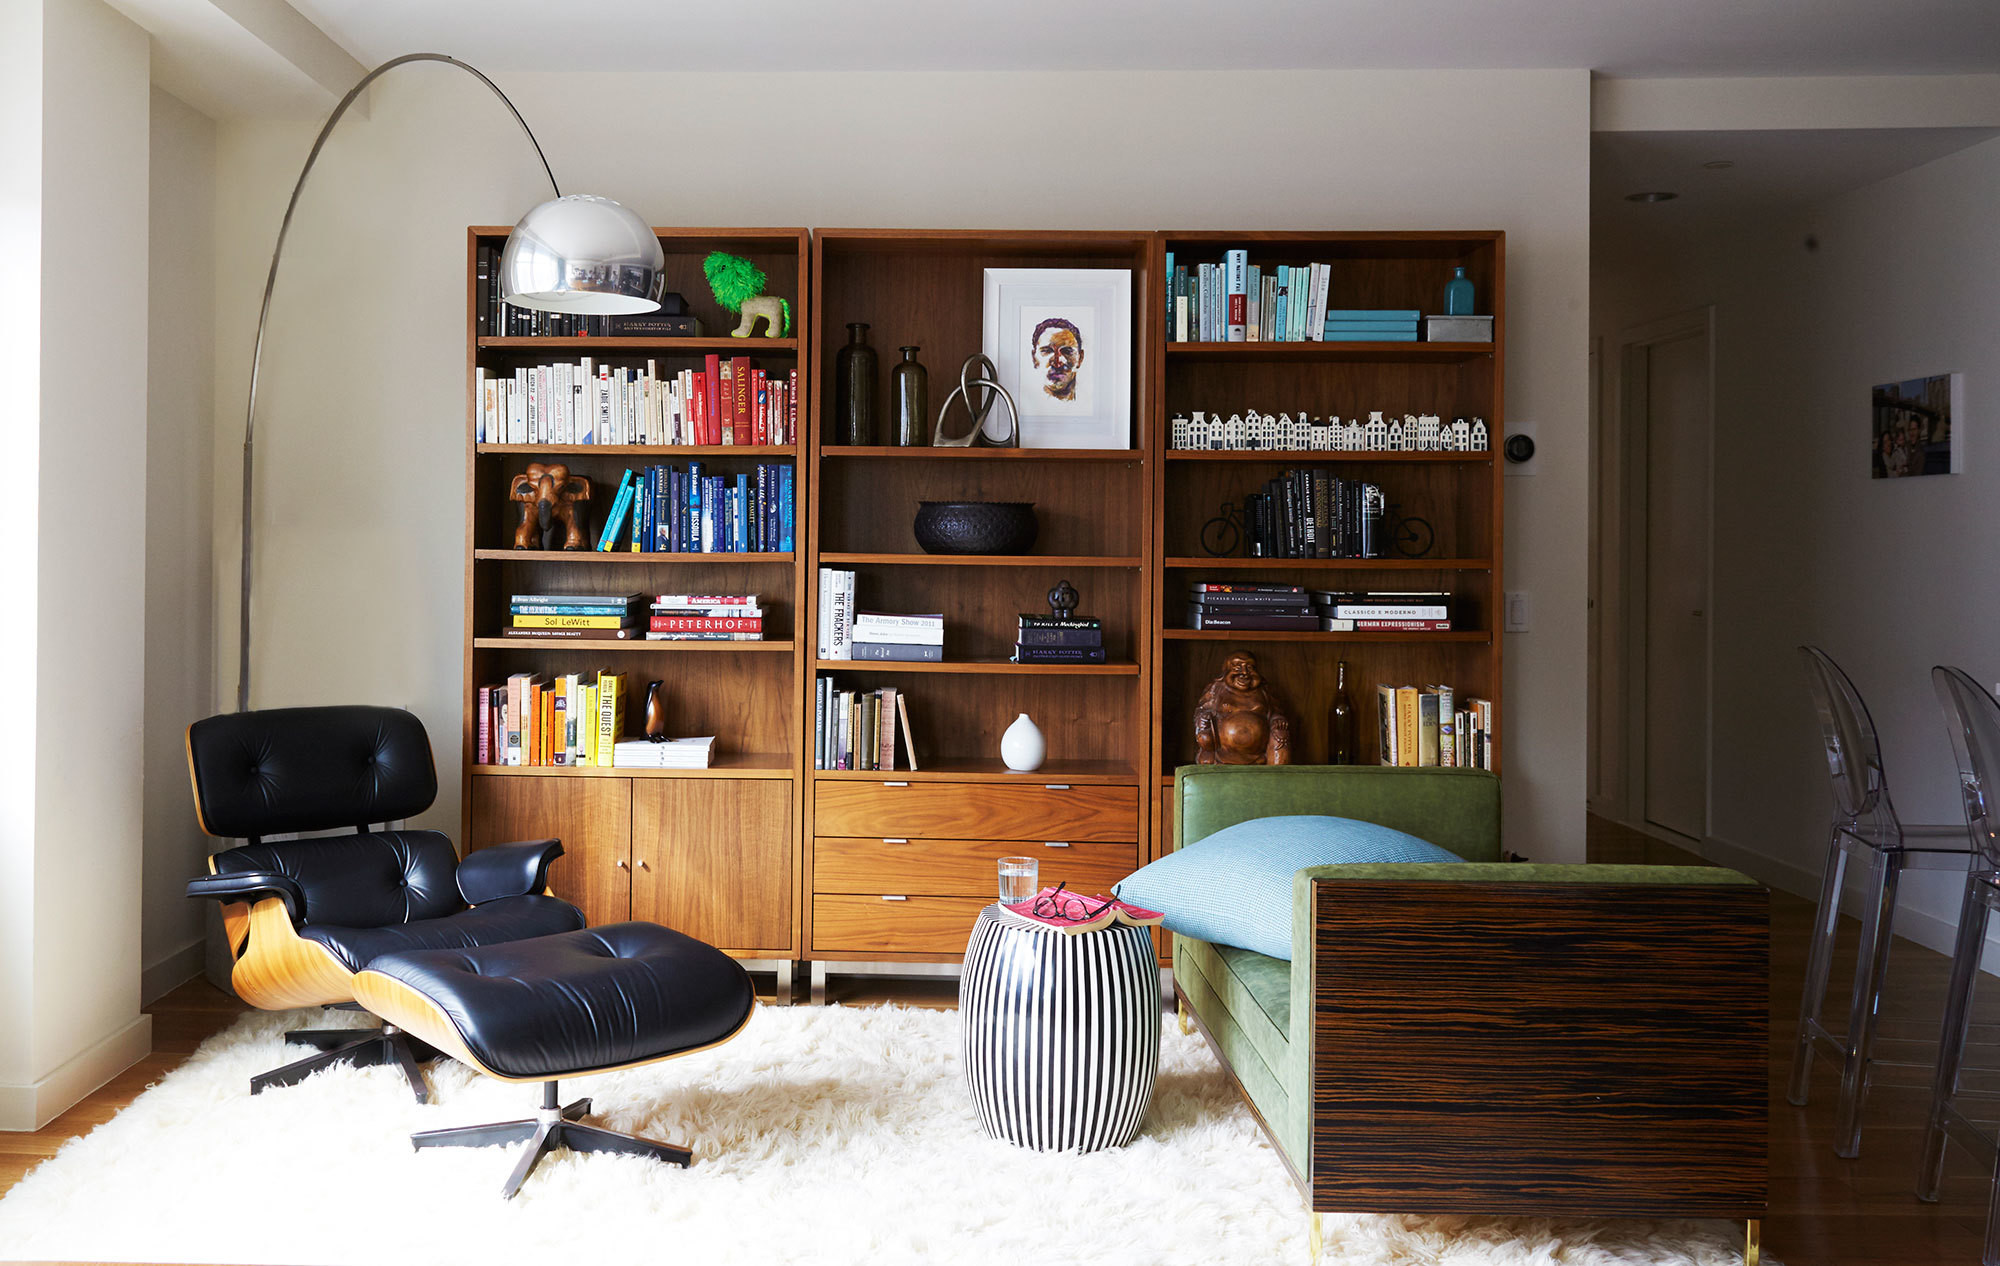 A classic Eames lounge and vinyl-upholstered daybed are complemented by a punchy, striped garden stool and color-coded bookshelves.